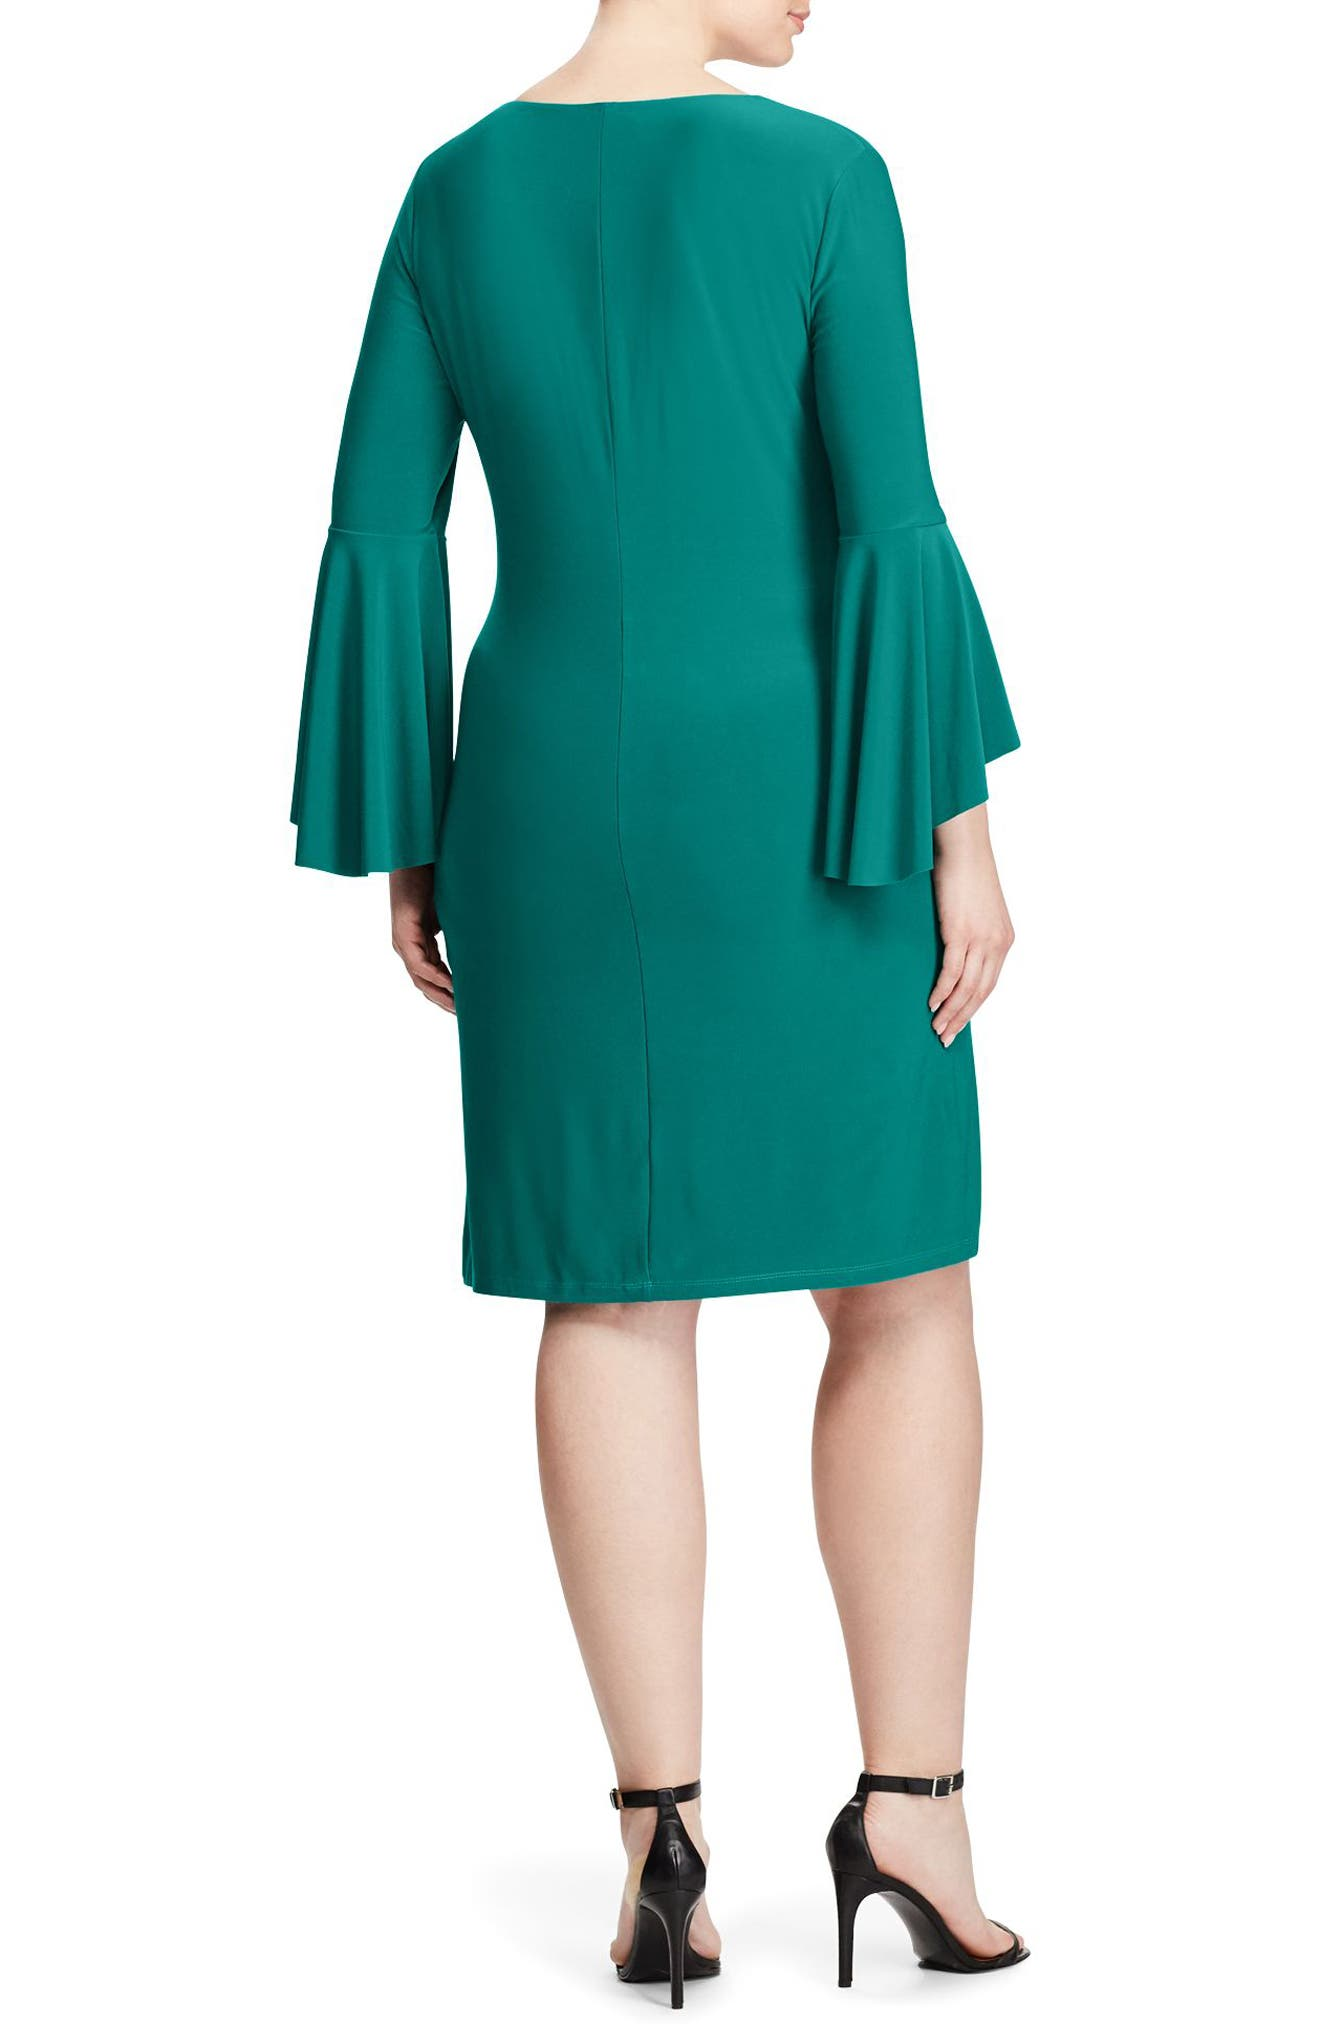 Alternate Image 2  - Lauren Ralph Lauren Flounce Sleeve Jersey Dress (Plus Size)